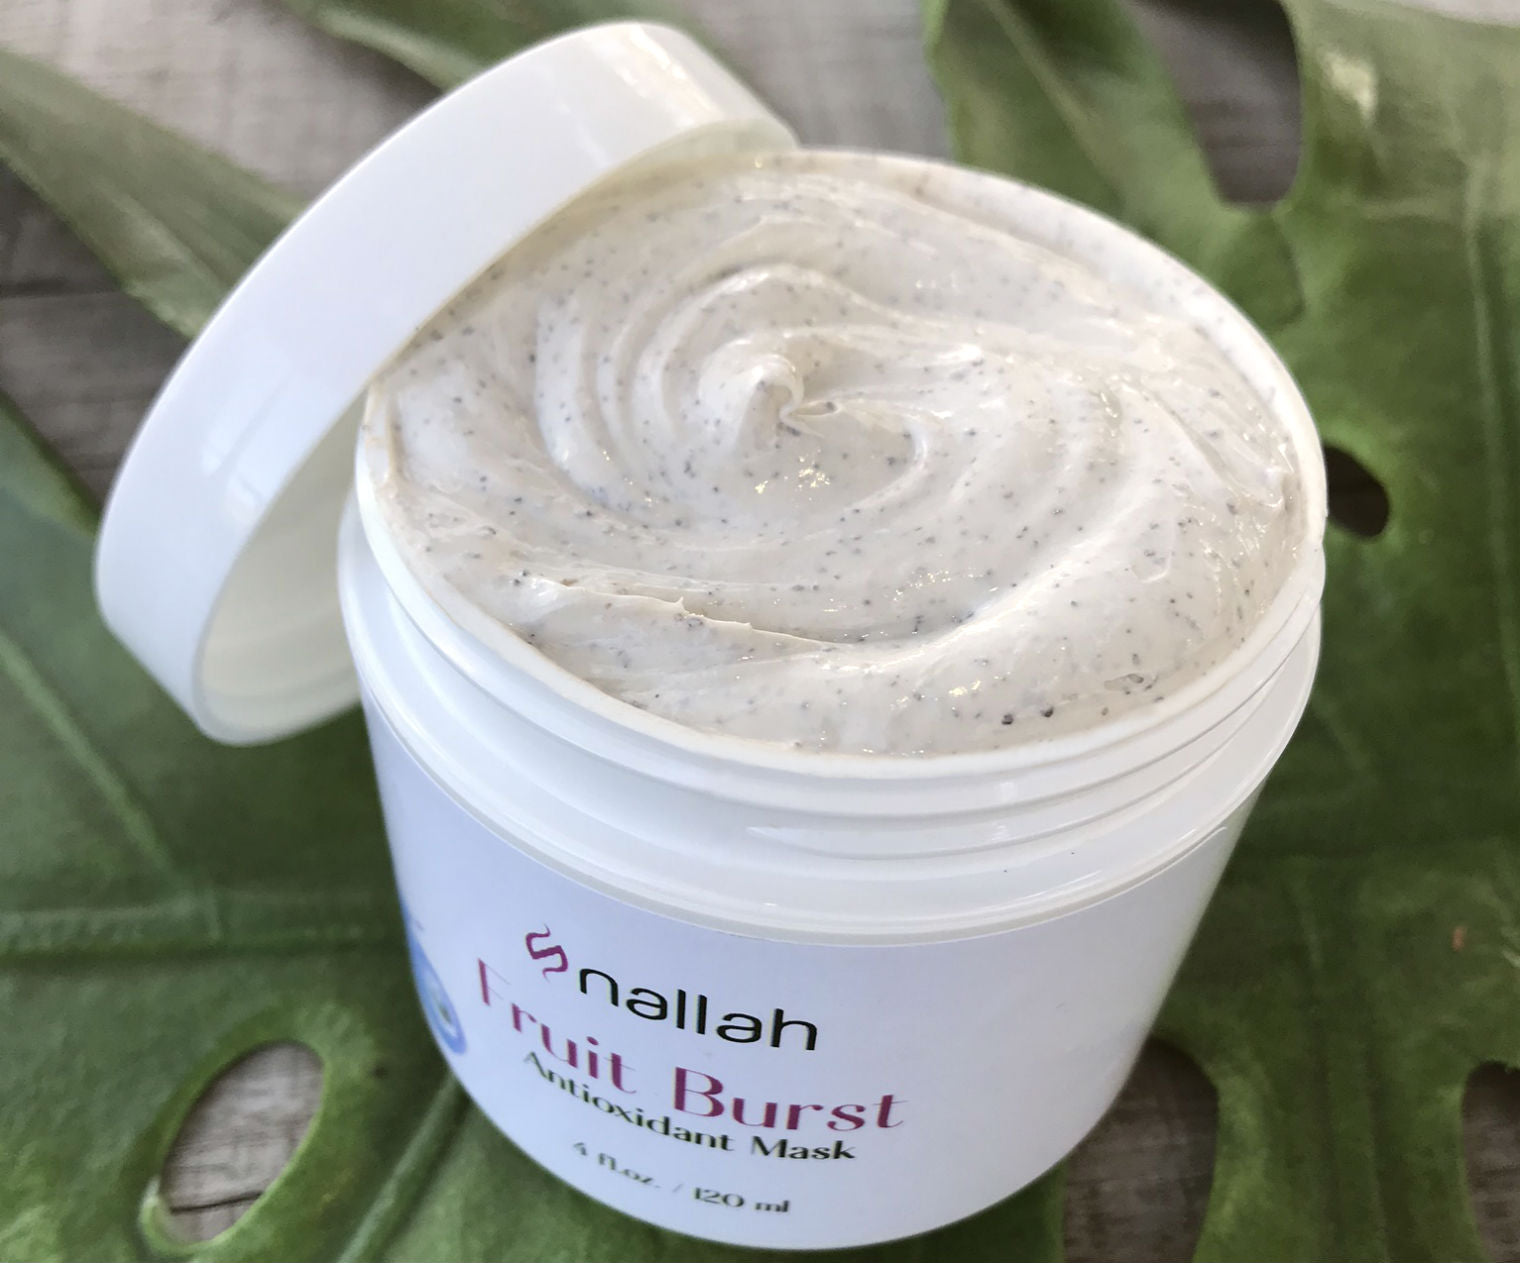 Fruit Burst™ Antioxidant Mask